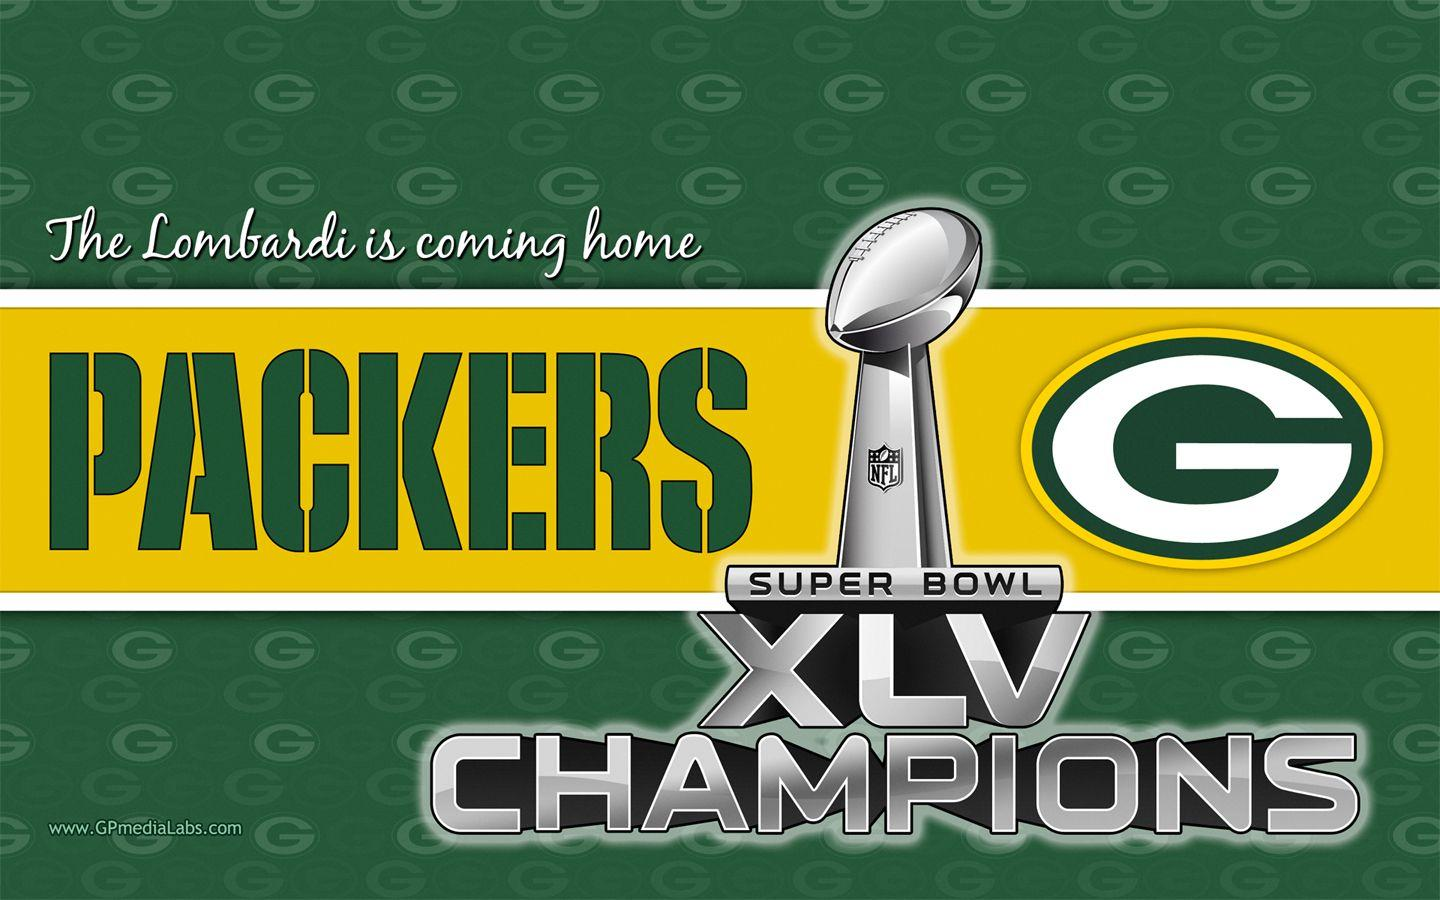 Green Bay Packer Wallpaper^@#